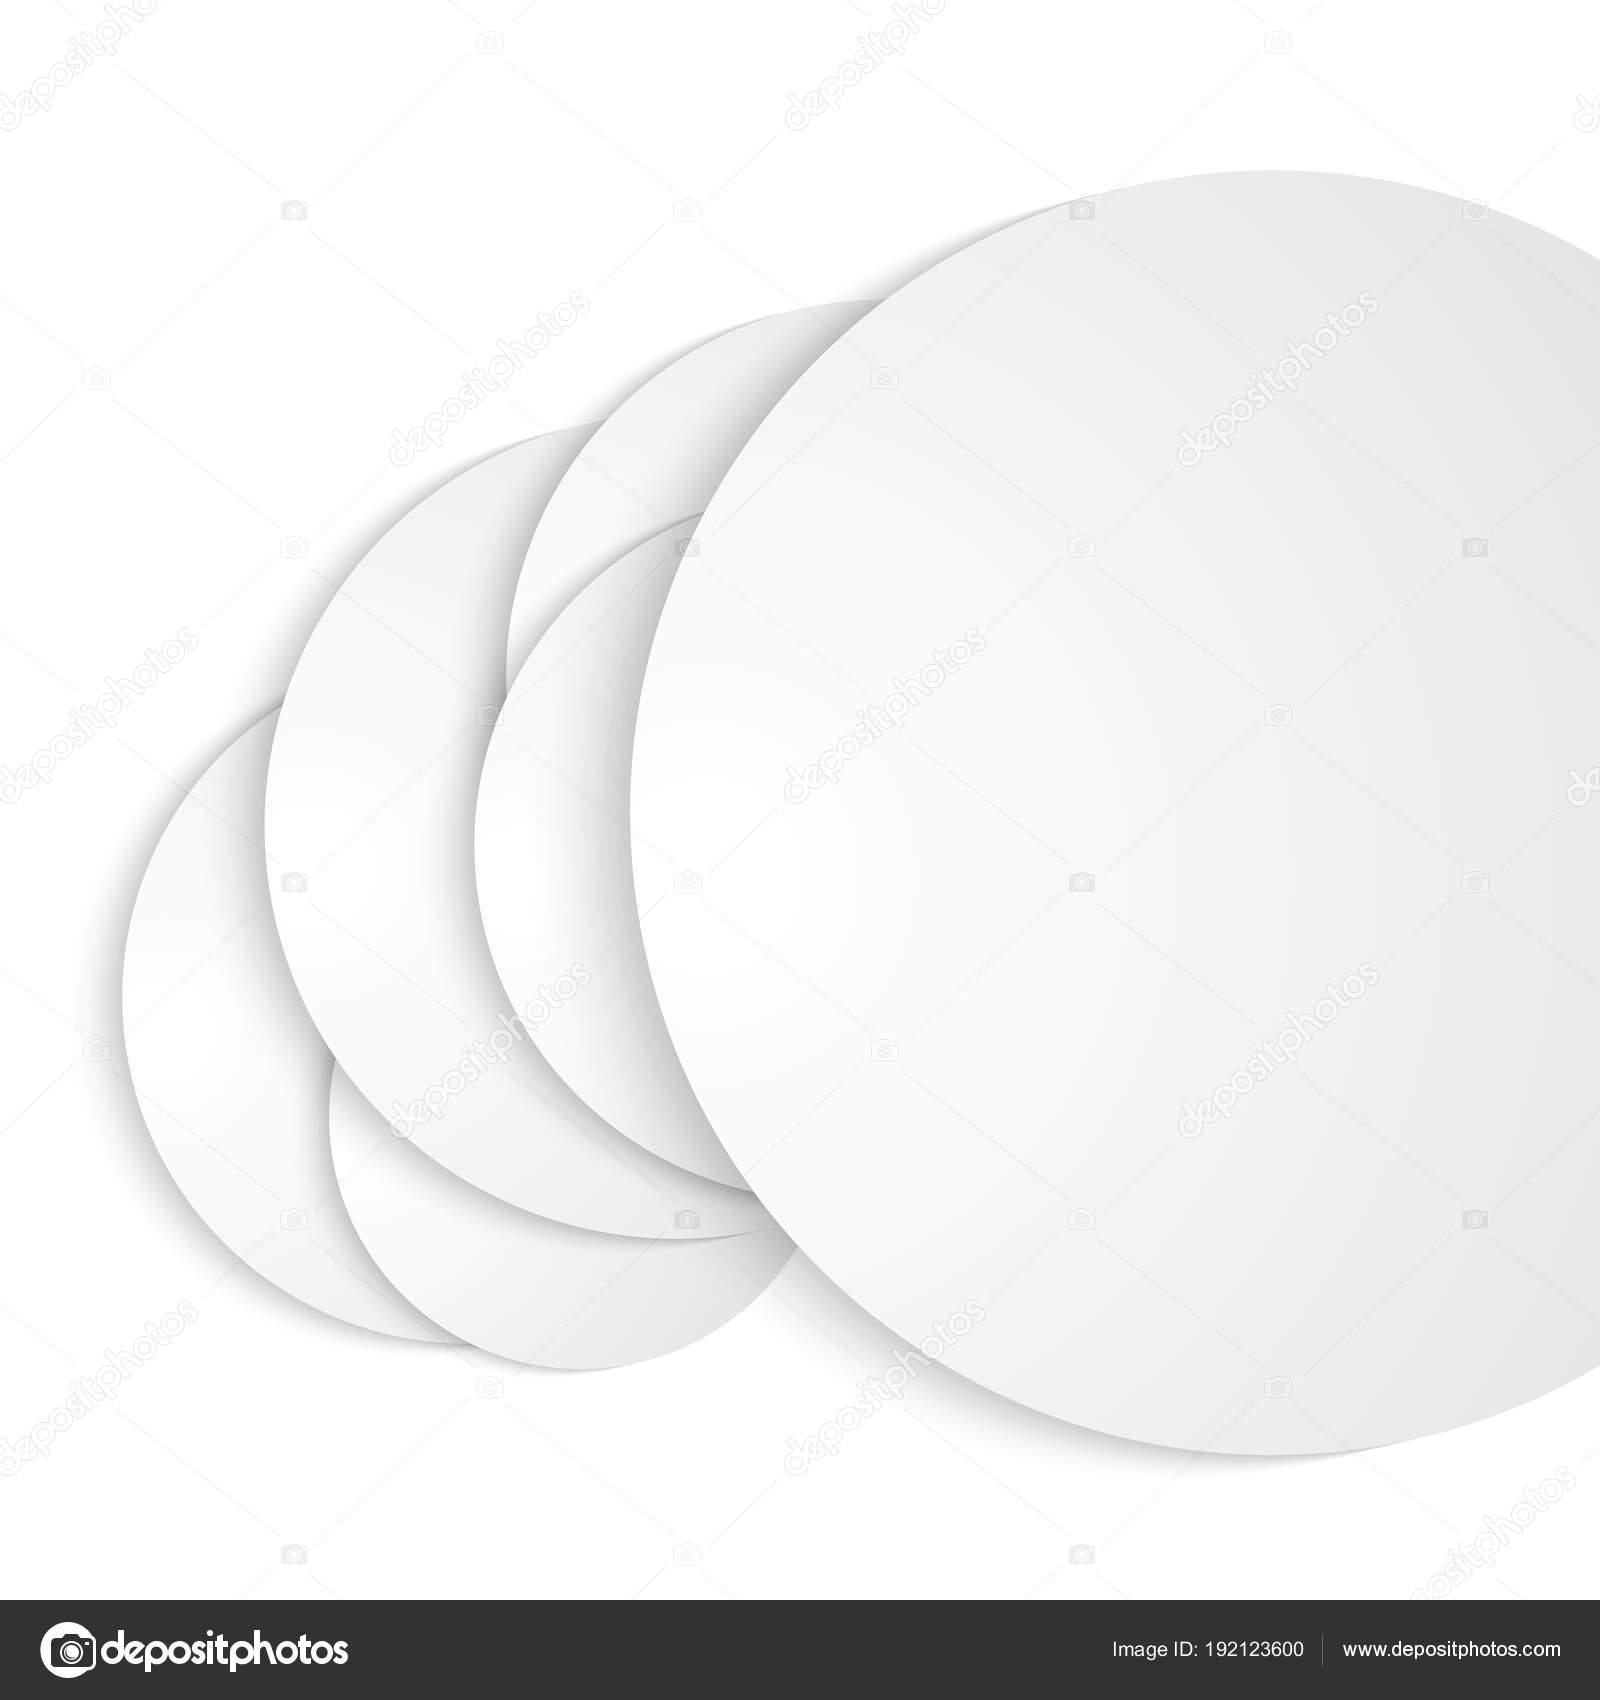 design elements circular paper cut on white background isolated0